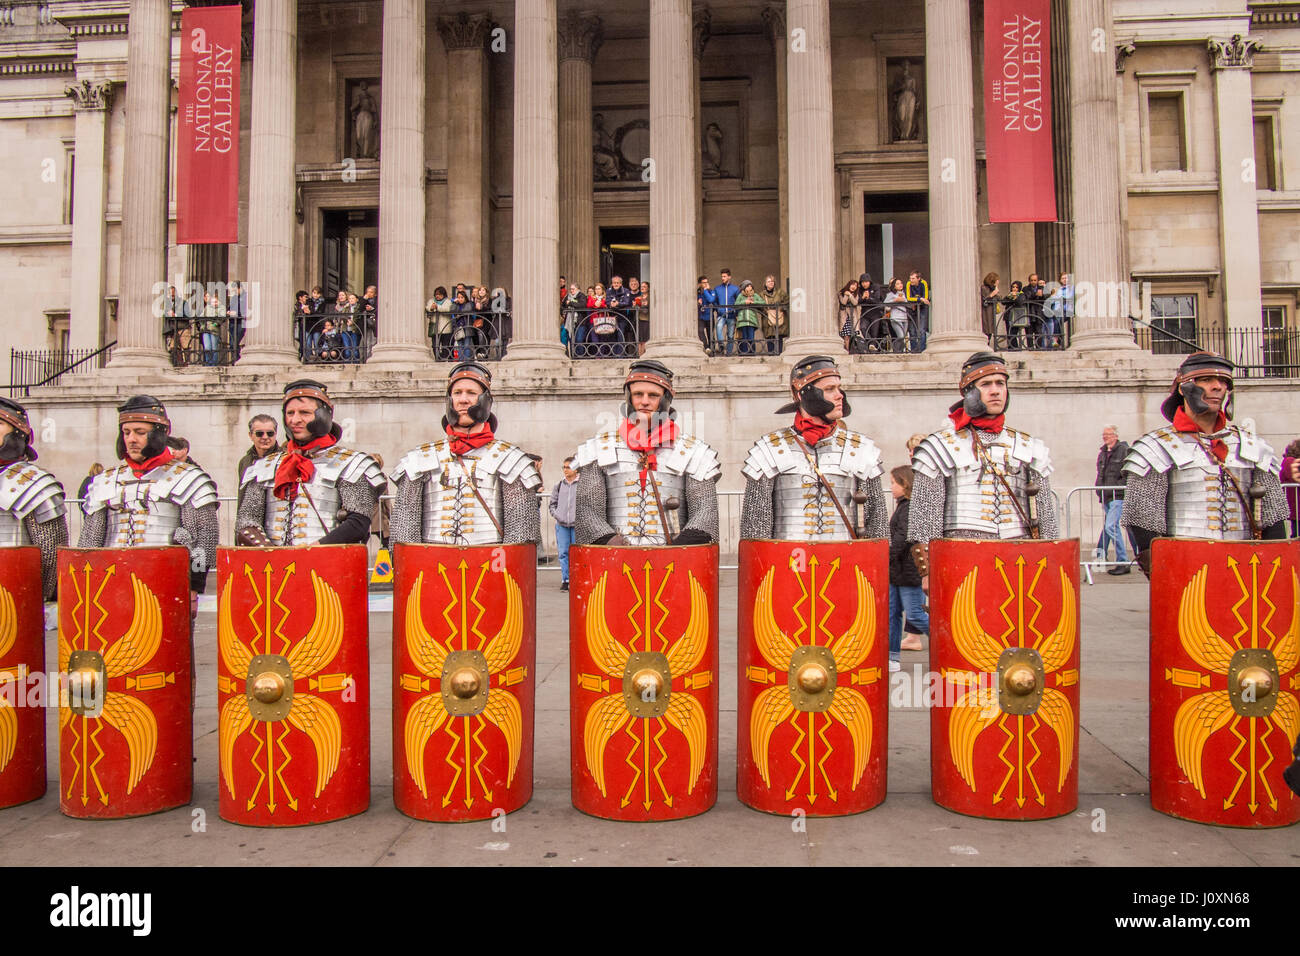 'Roman Guards' before Theatrical performance of the Passion of the Christ in Trafalgar Square London, Easter - Stock Image